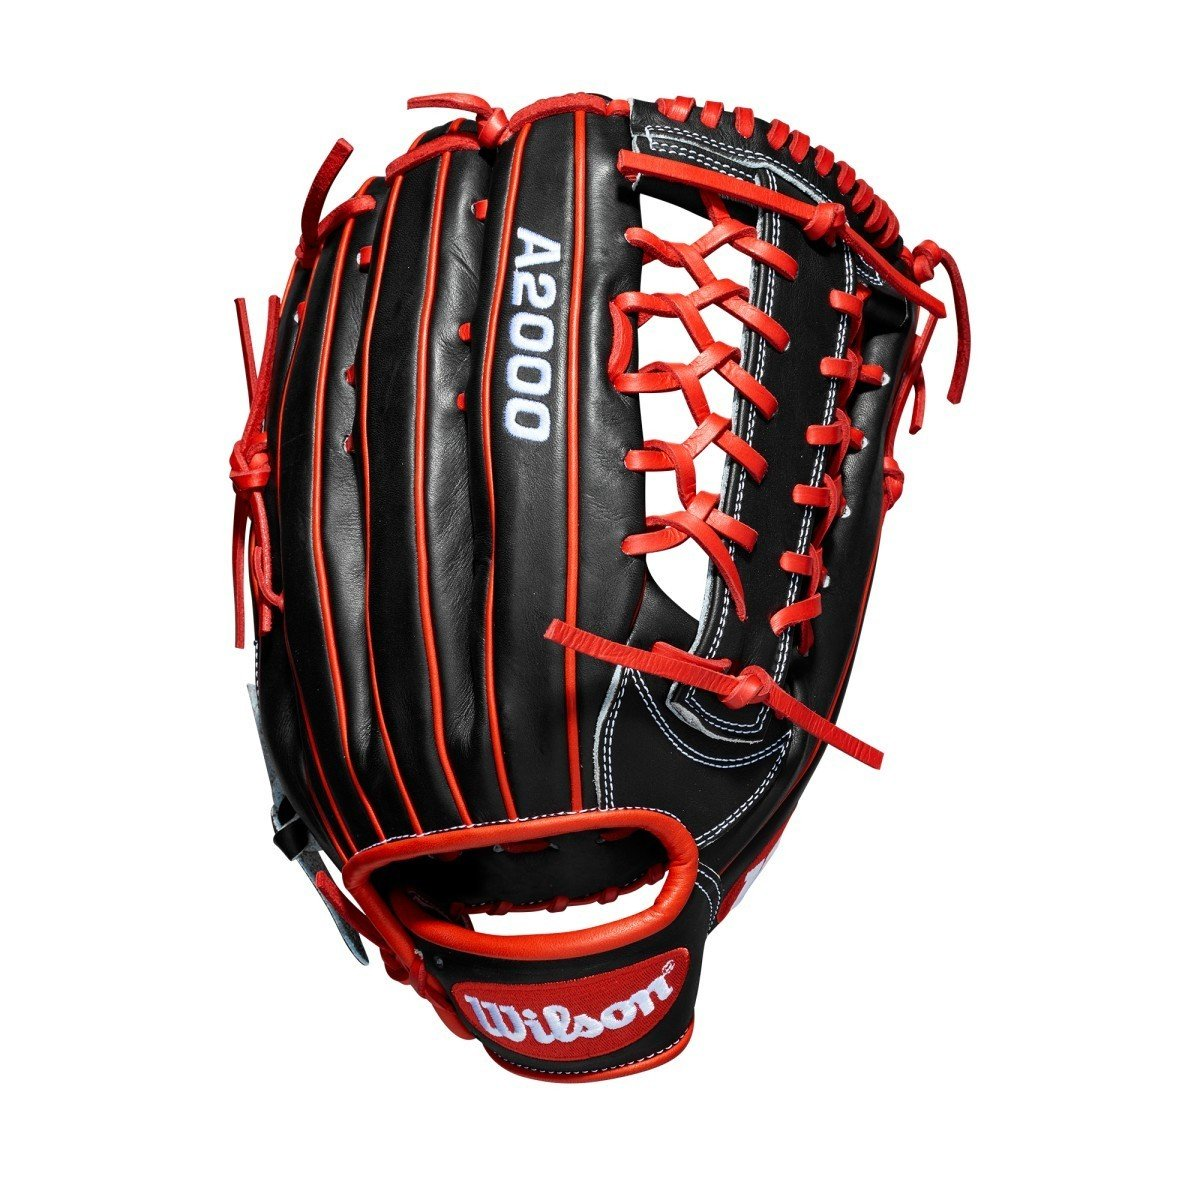 "A2000 AB KP92 12.5"" Outfield R or L"